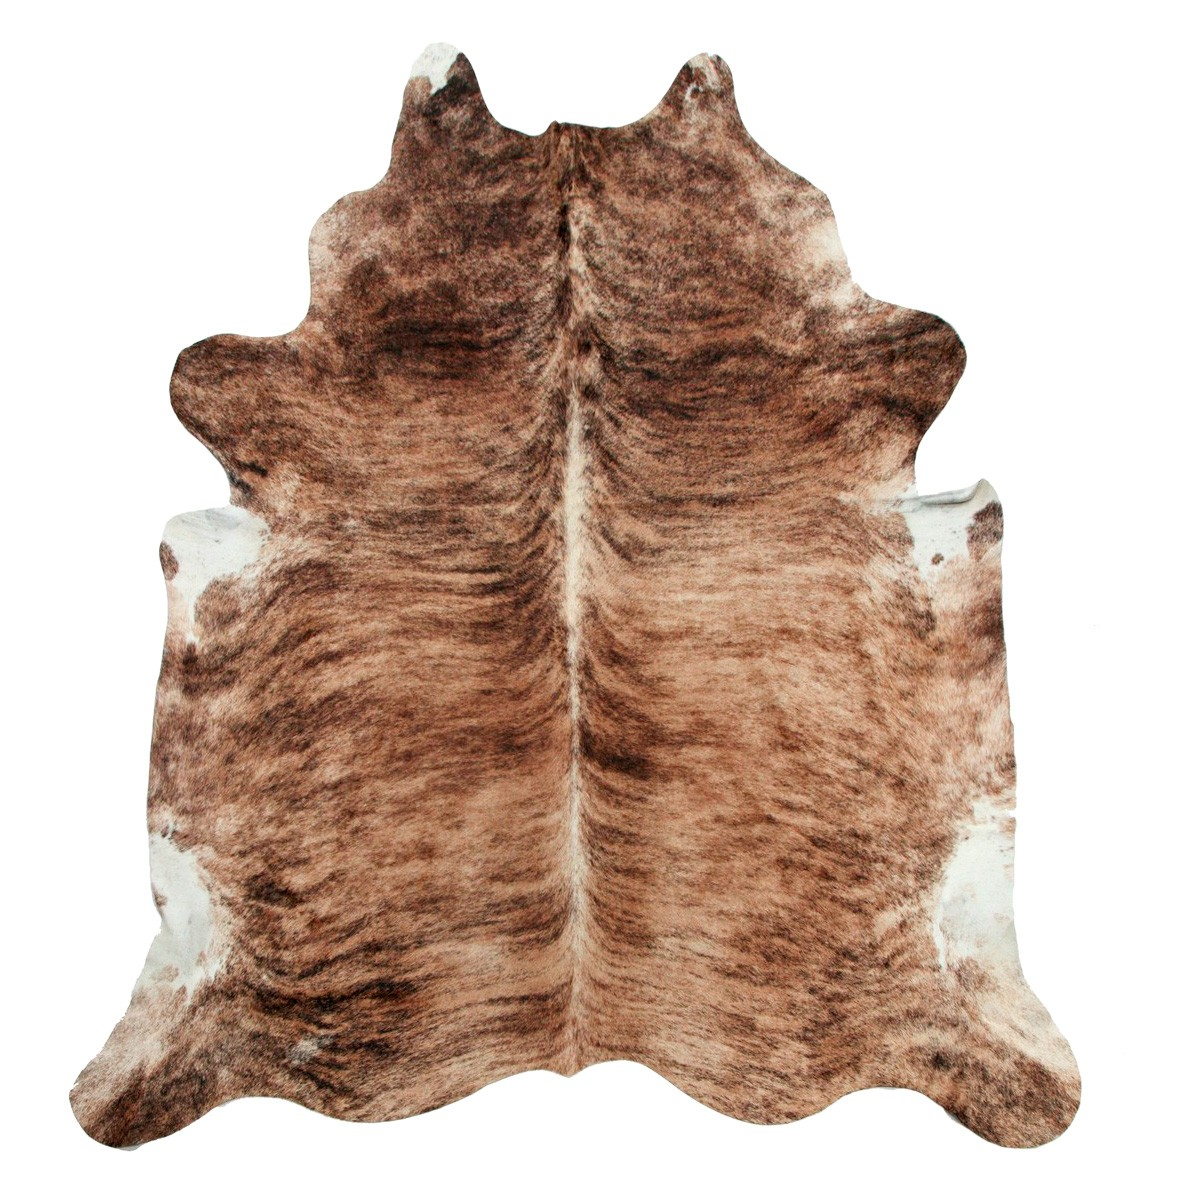 Victor 310 Brazilian Natural Cowhide Rug, 220x240cm